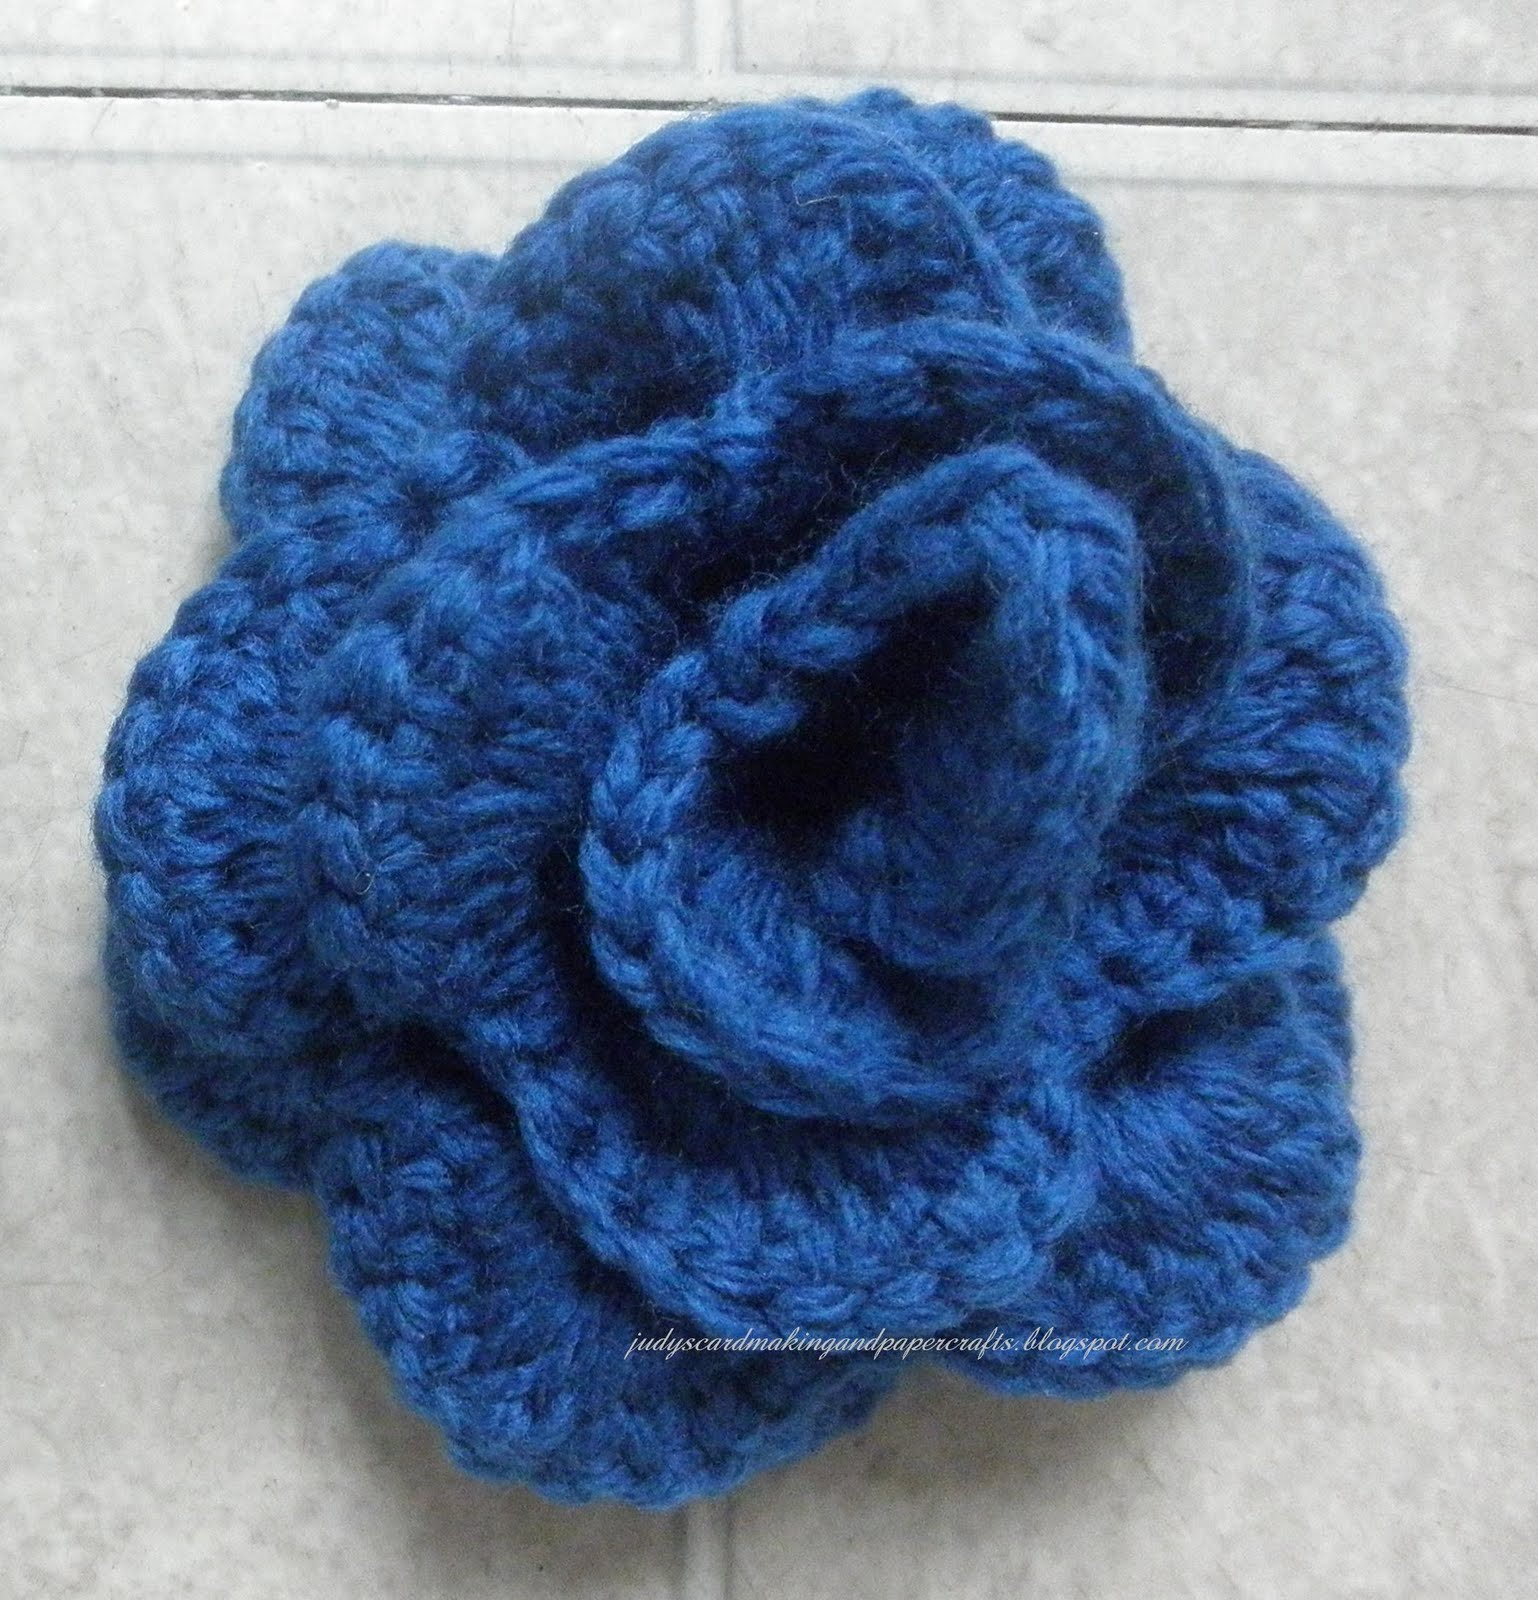 Crochet Crochet Crochet : crochet rose pattern this website is my favorite crochet site